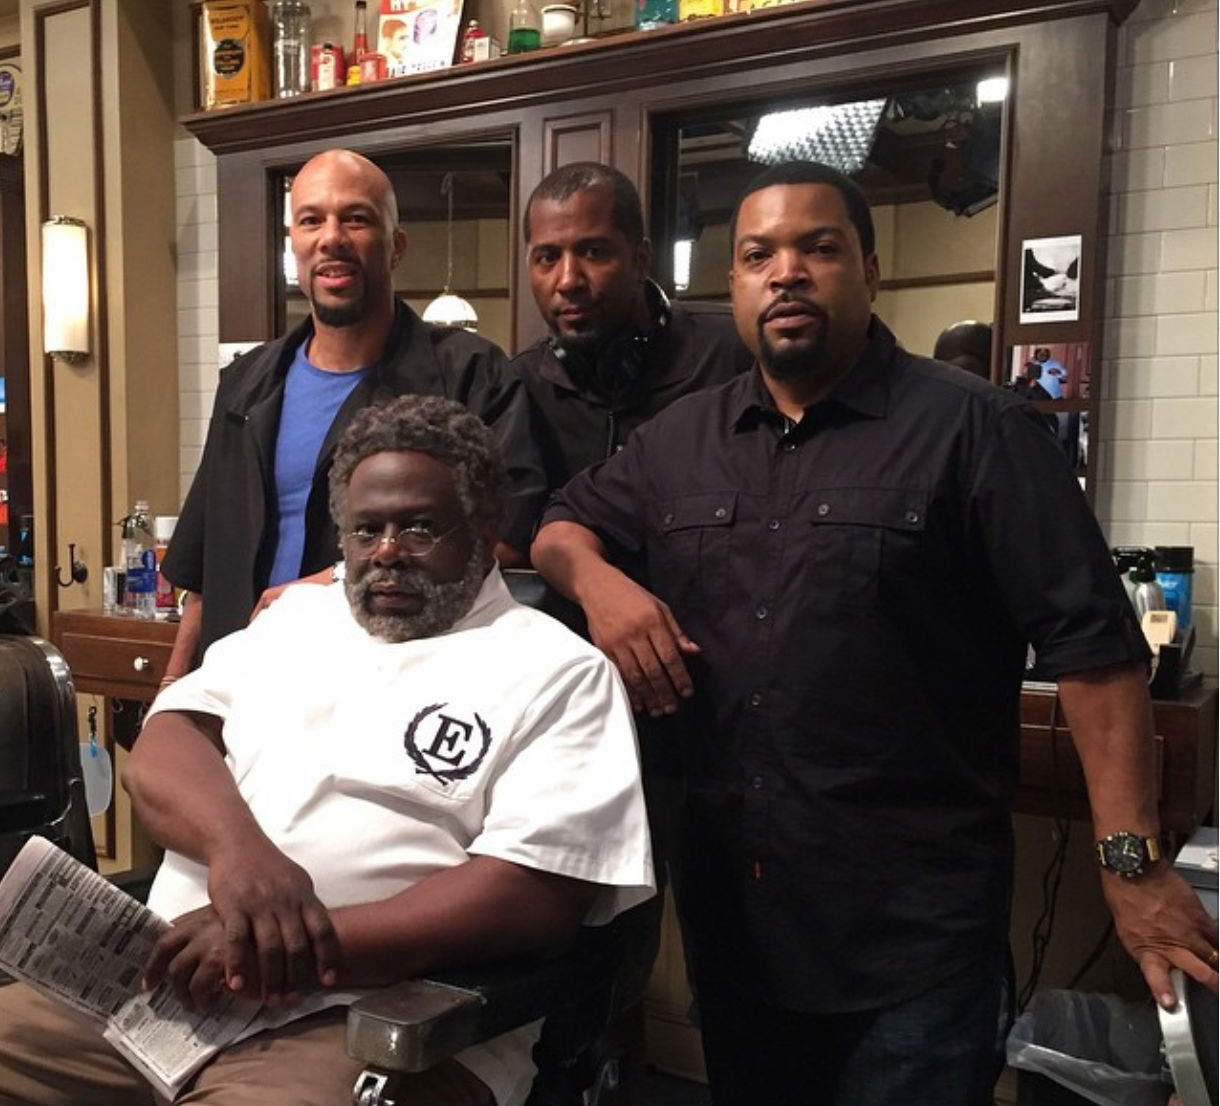 Barbershop 3 : Barbershop 3 Ice Cube Common Malcolm D. Lee and Cedric the Entertainer ...